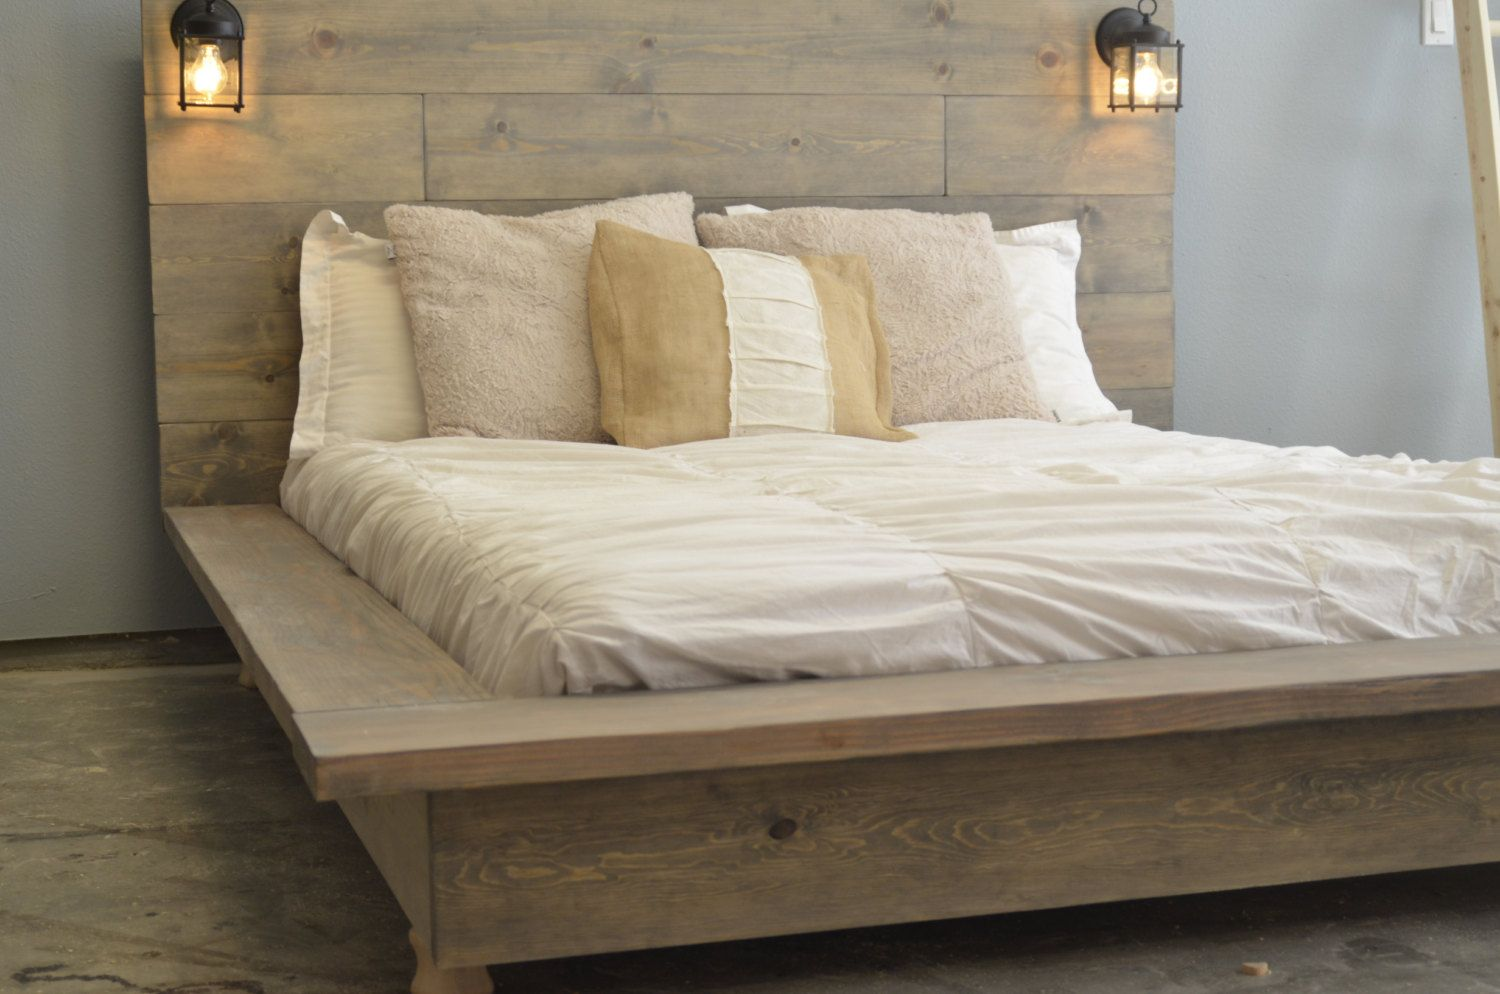 Floating Rustic Wood Platform Bedframe With By Knotsandbiscuits